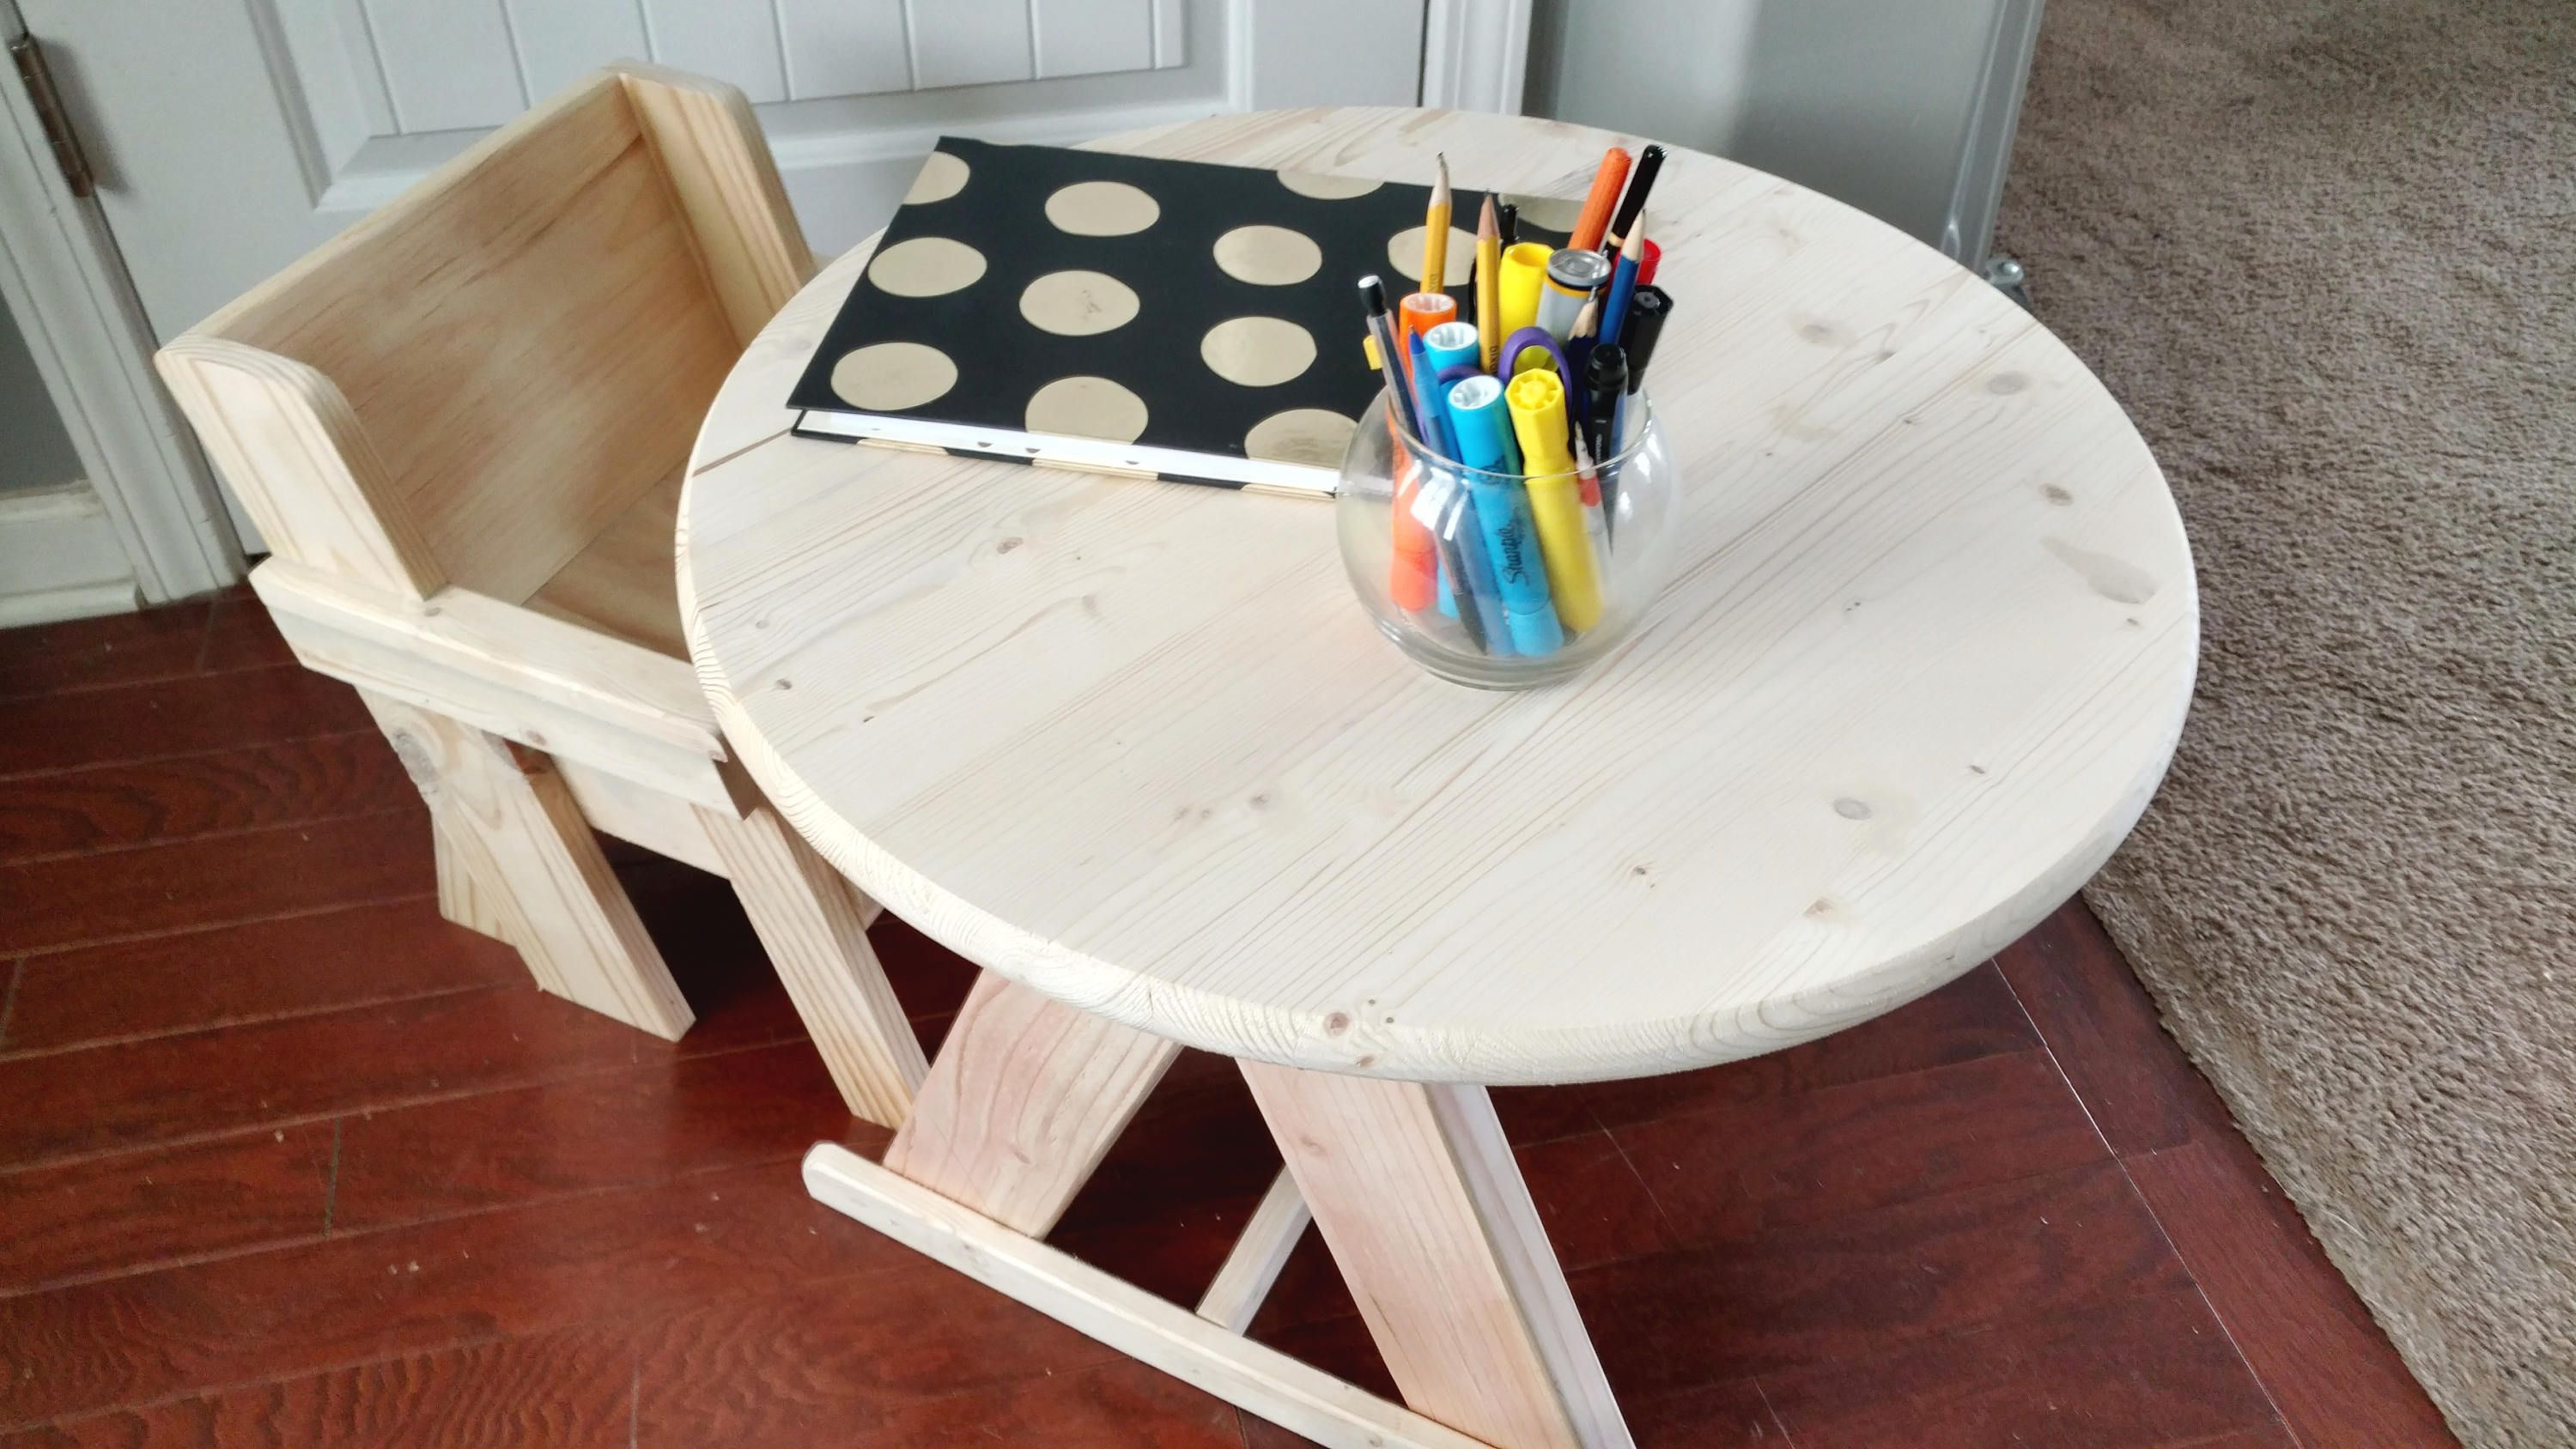 Kids Table and Chair Set, Toddler Table, Coloring Table, Age 1-4 yrs ...